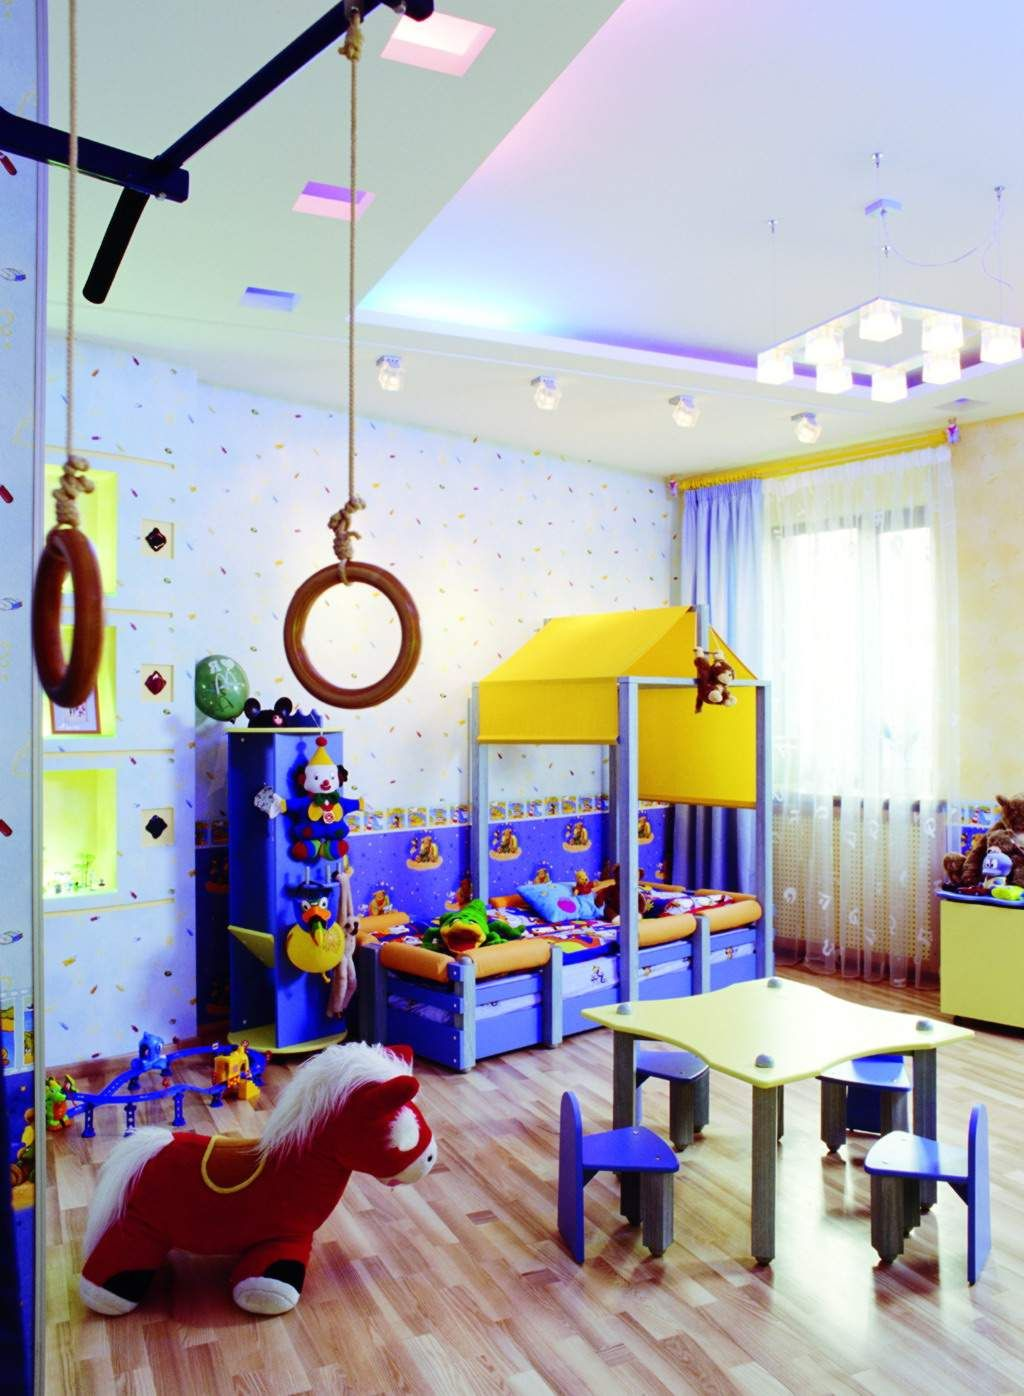 Kids Bedroom Kids Room Interior Design With Play And Learn